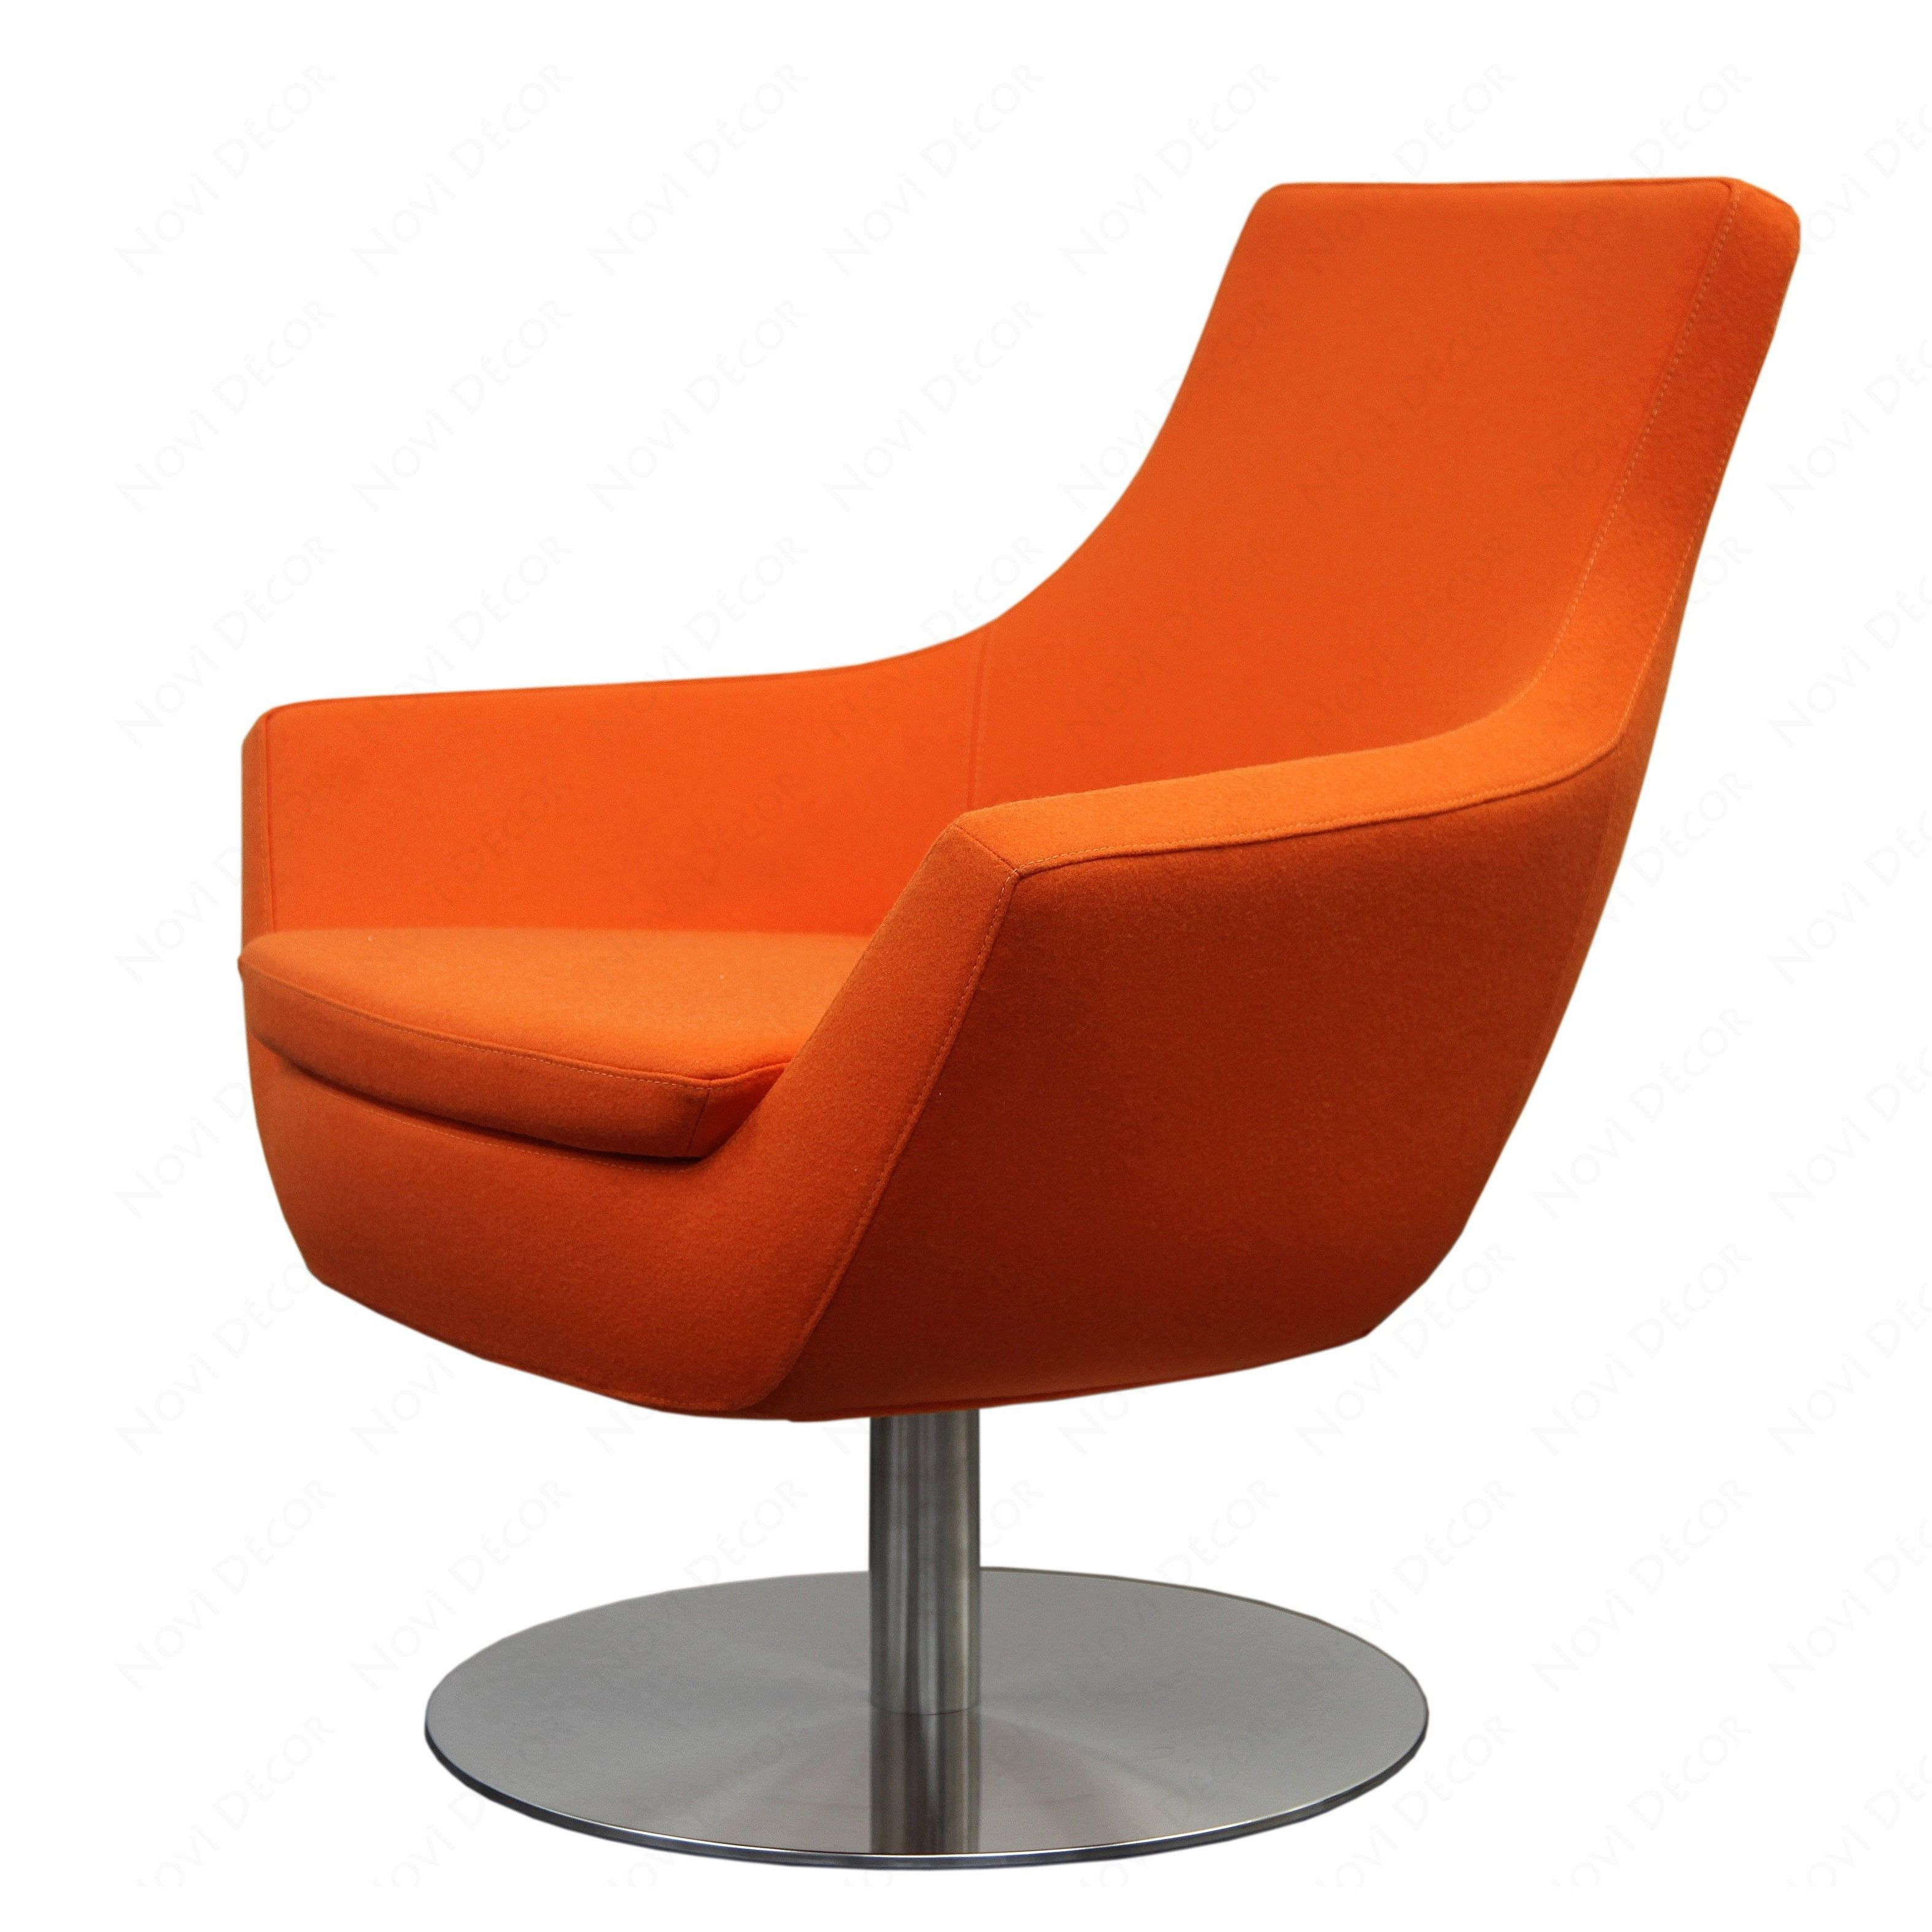 Orange Chairs Living Room Furniture Accessories Orange Swivel Chairs For Living Room